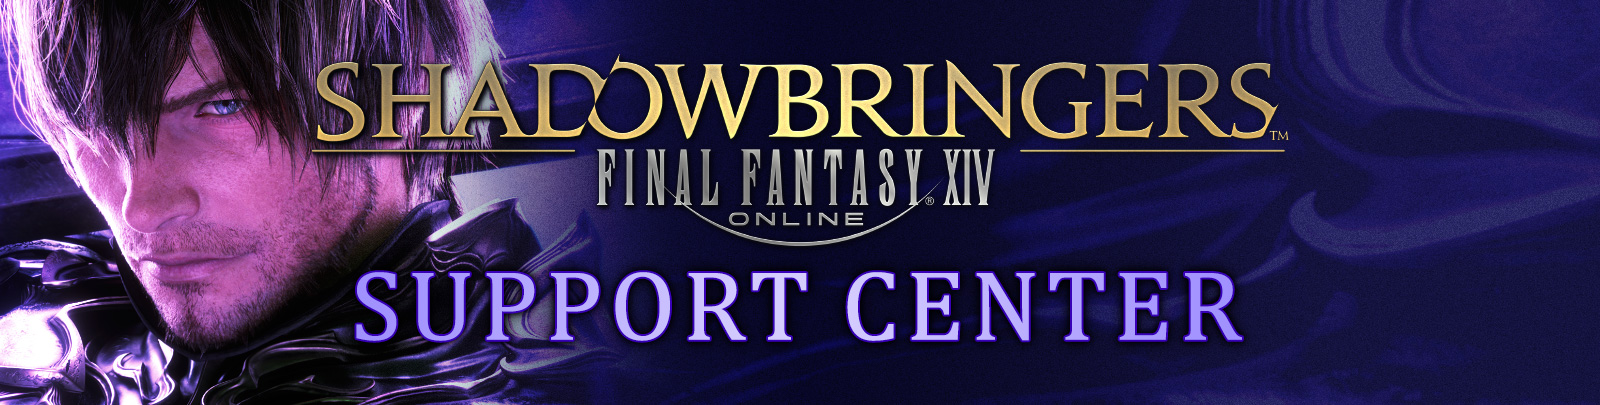 SQUARE ENIX Support Center - FINAL FANTASY XIV